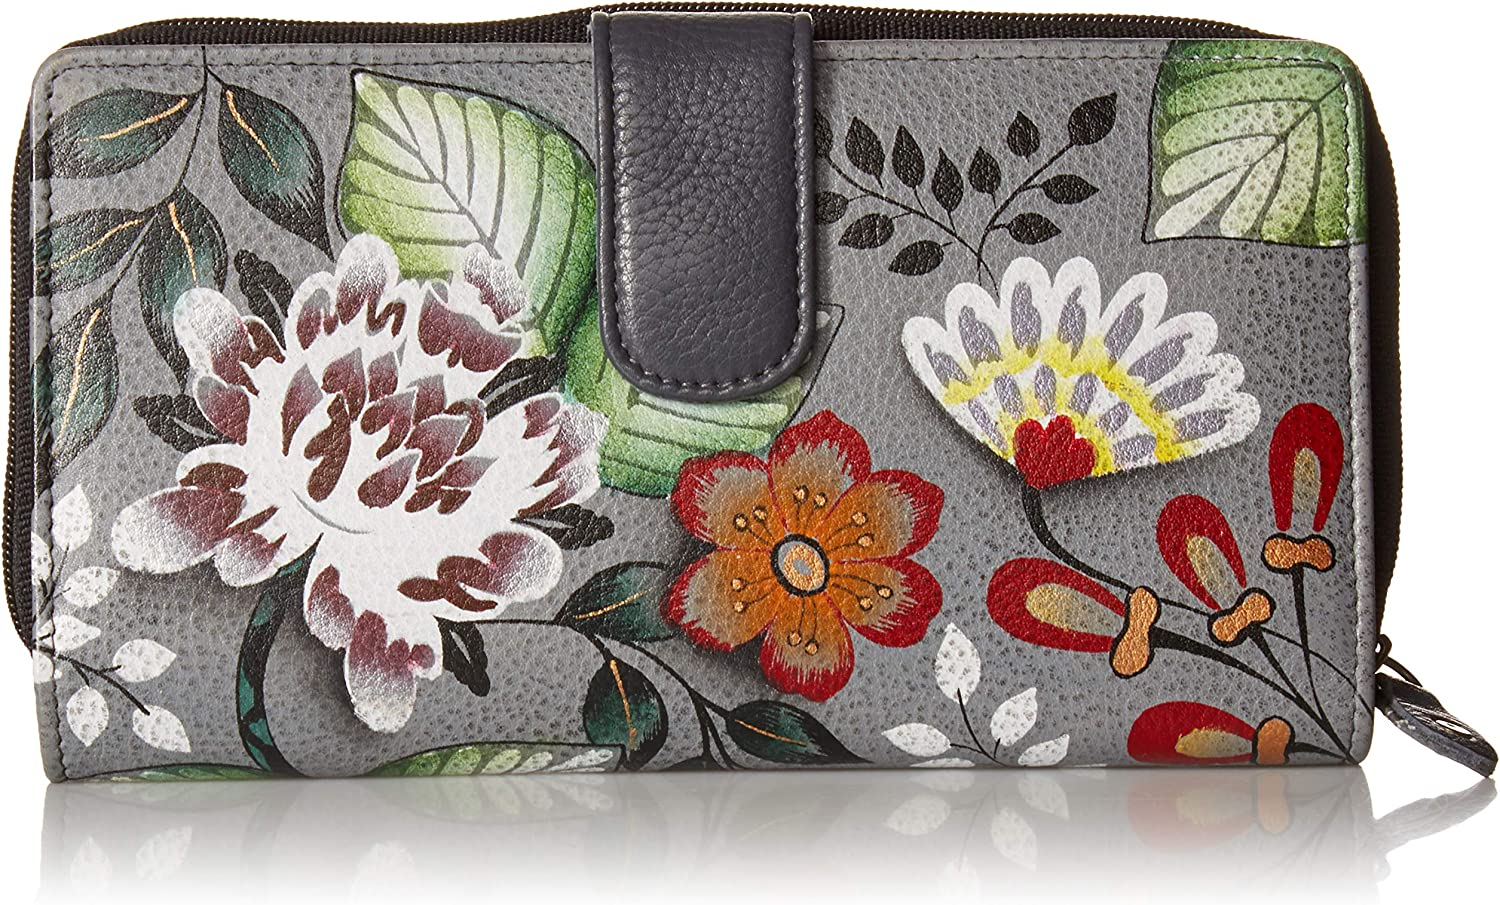 Anna by Anuschka Hand Painted Leather Women's Two Fold Clutch Wallet